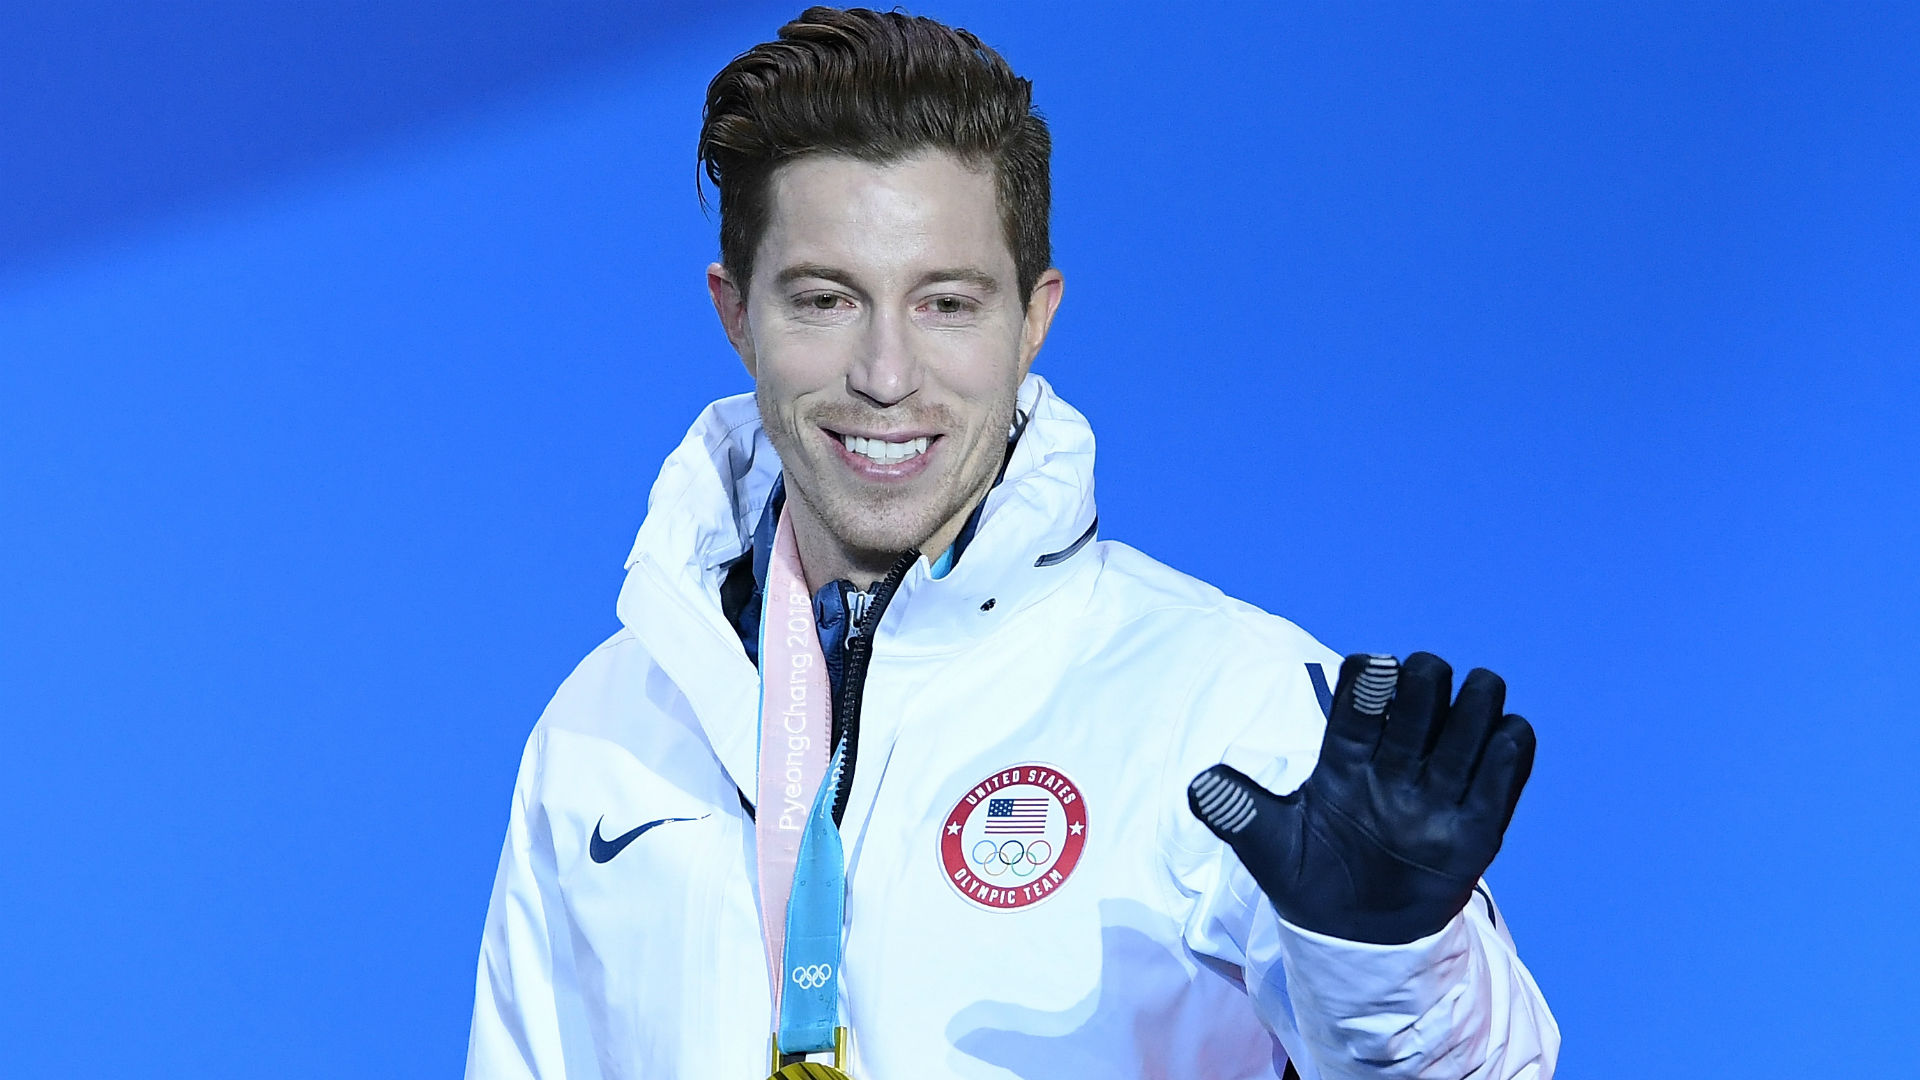 Olympics hero Shaun White apologises for brushing off sexual misconduct claims